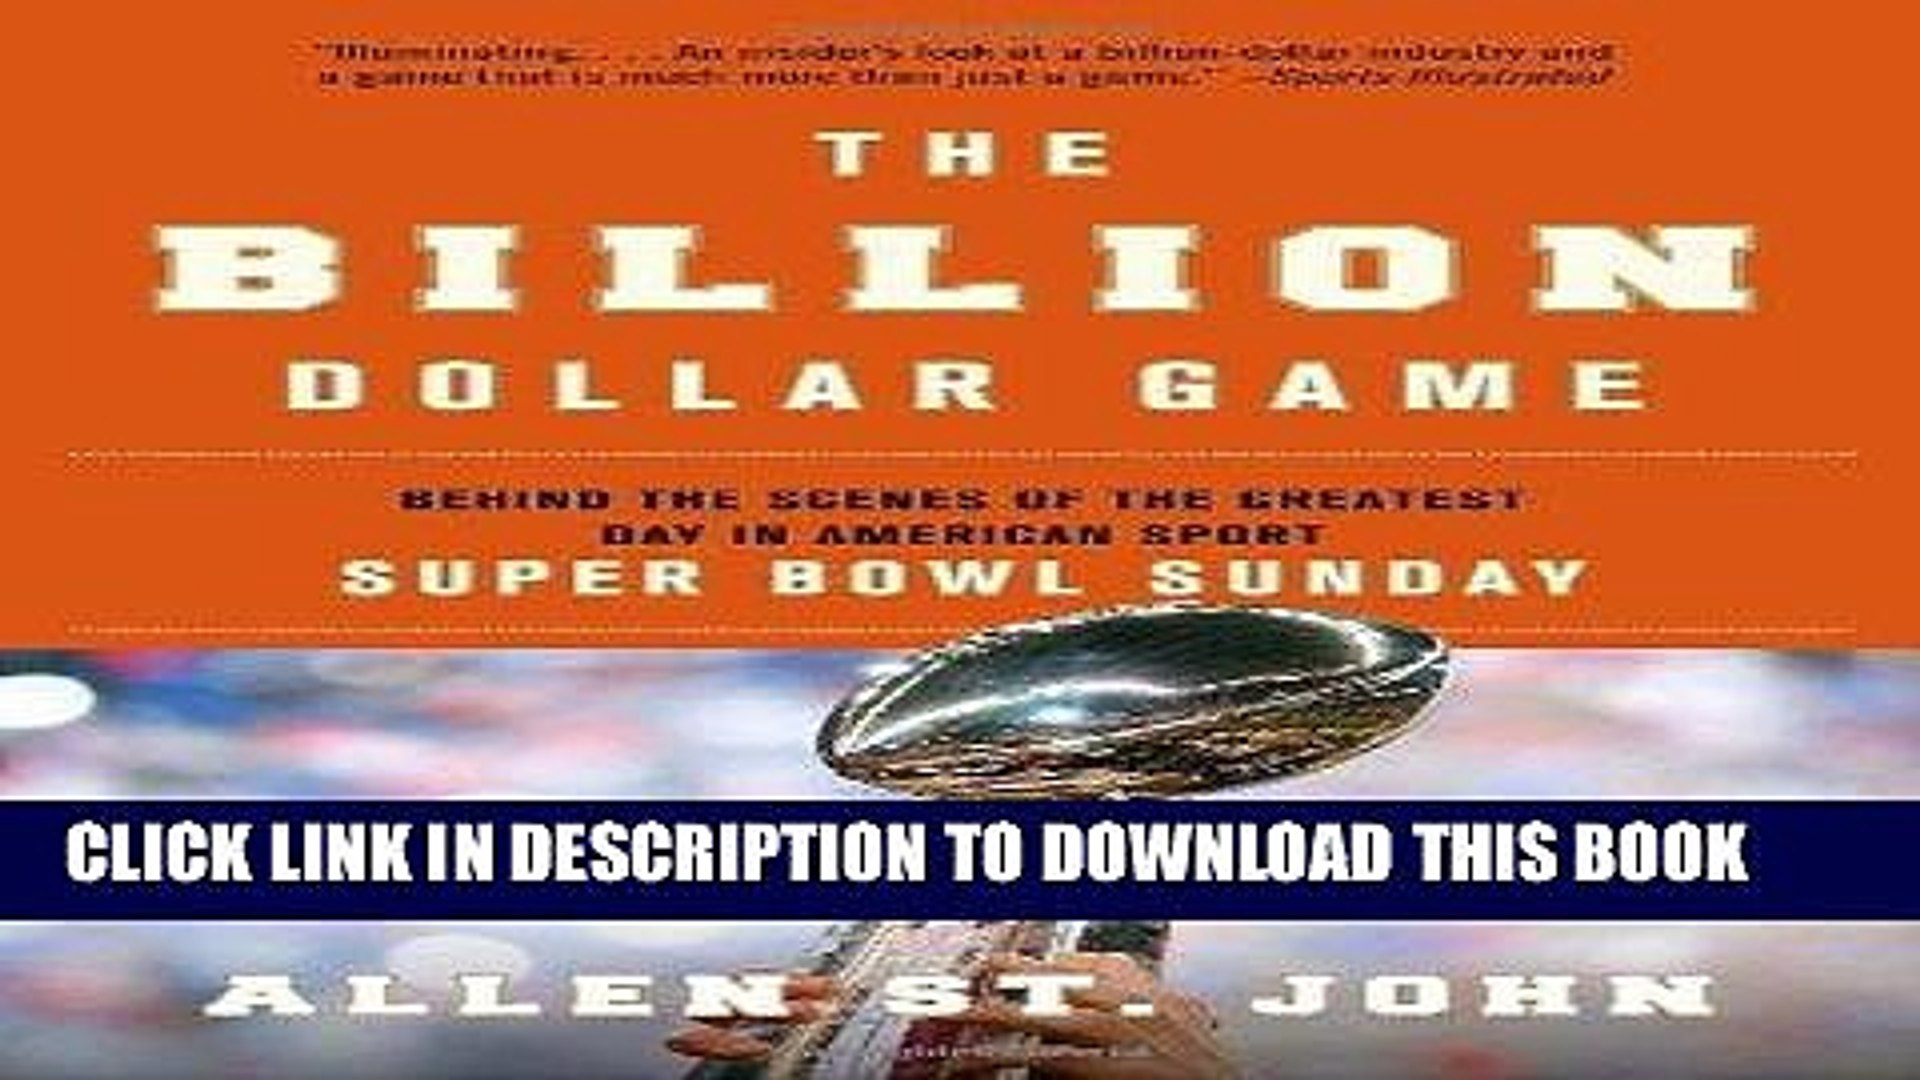 [New] PDF The Billion Dollar Game: Behind the Scenes of the Greatest Day In American Sport - Super